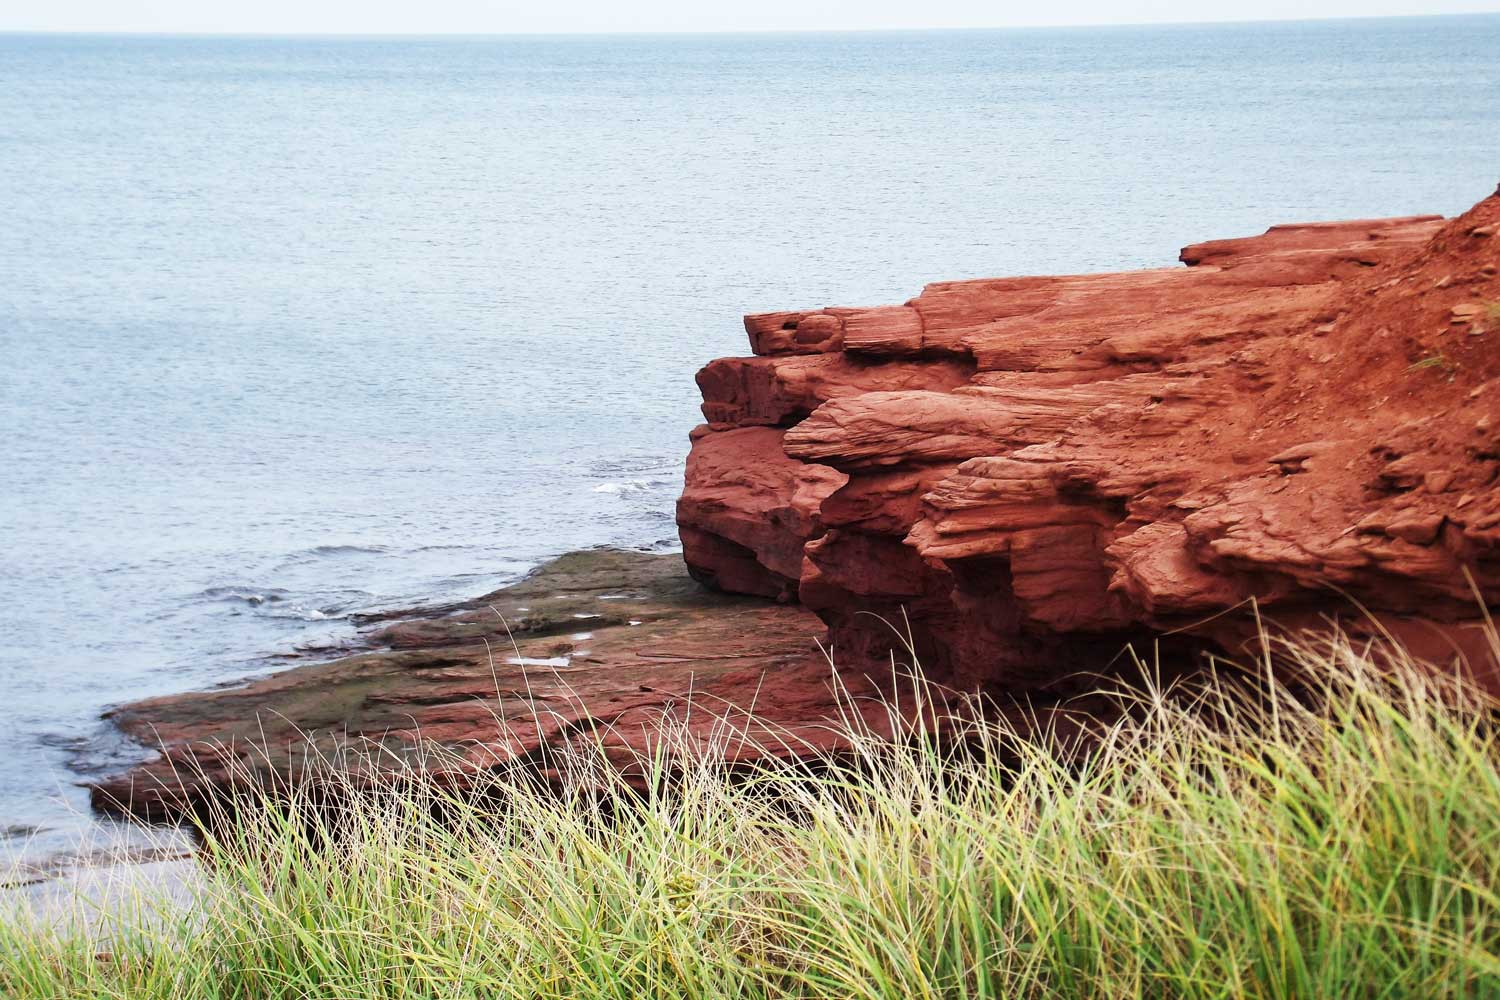 Brilliant red cliffs contrast vivid greenery and blue sky of PEI